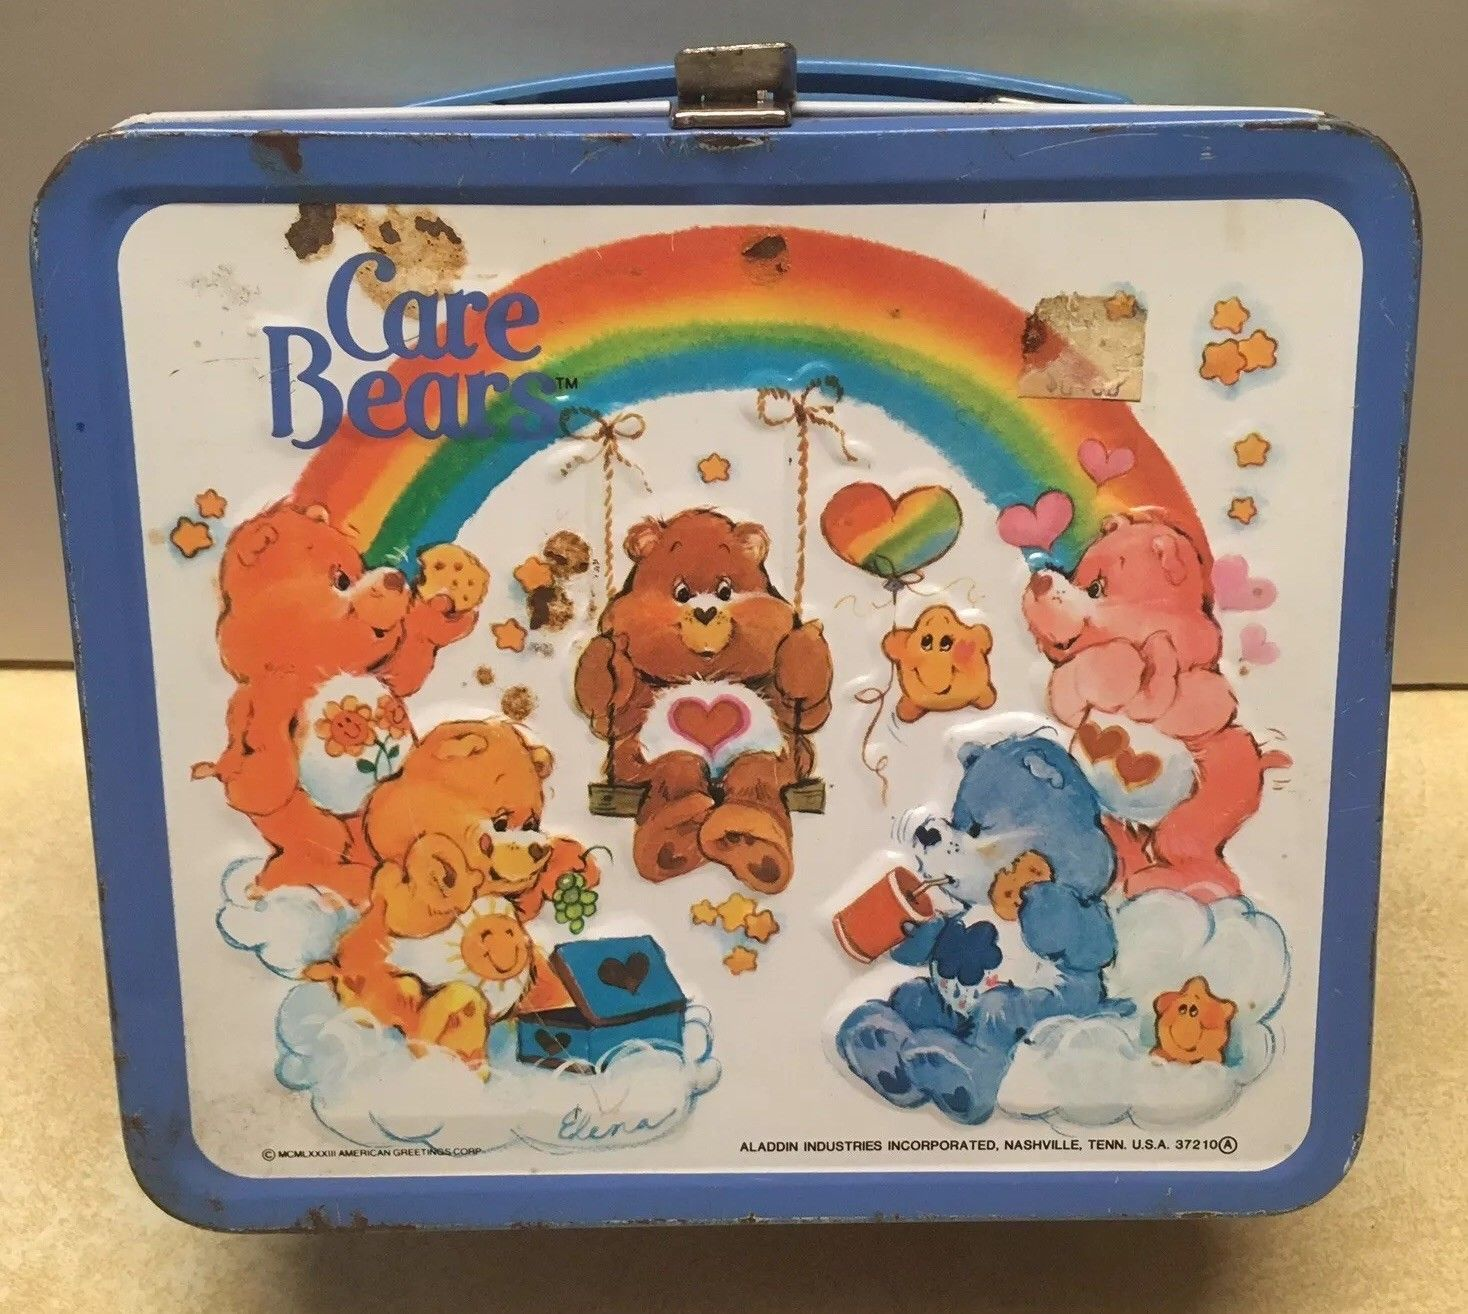 Care Bears Metal Lunchbox Vintage 1983 Blue And 10 Similar Items